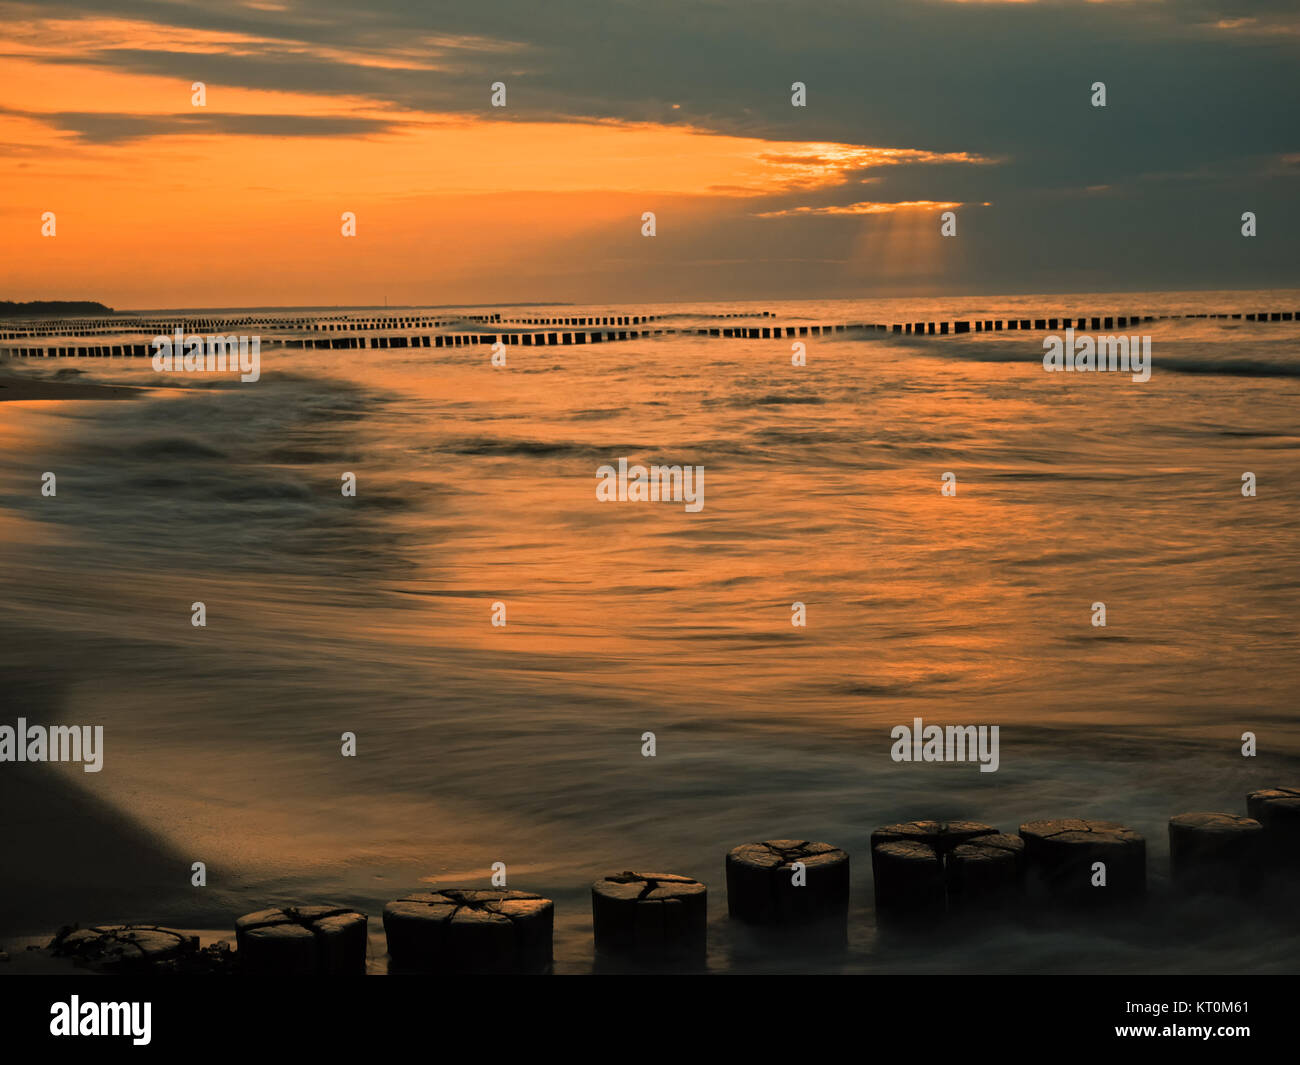 Baltic Sea with breakwaters at sunset - Stock Image